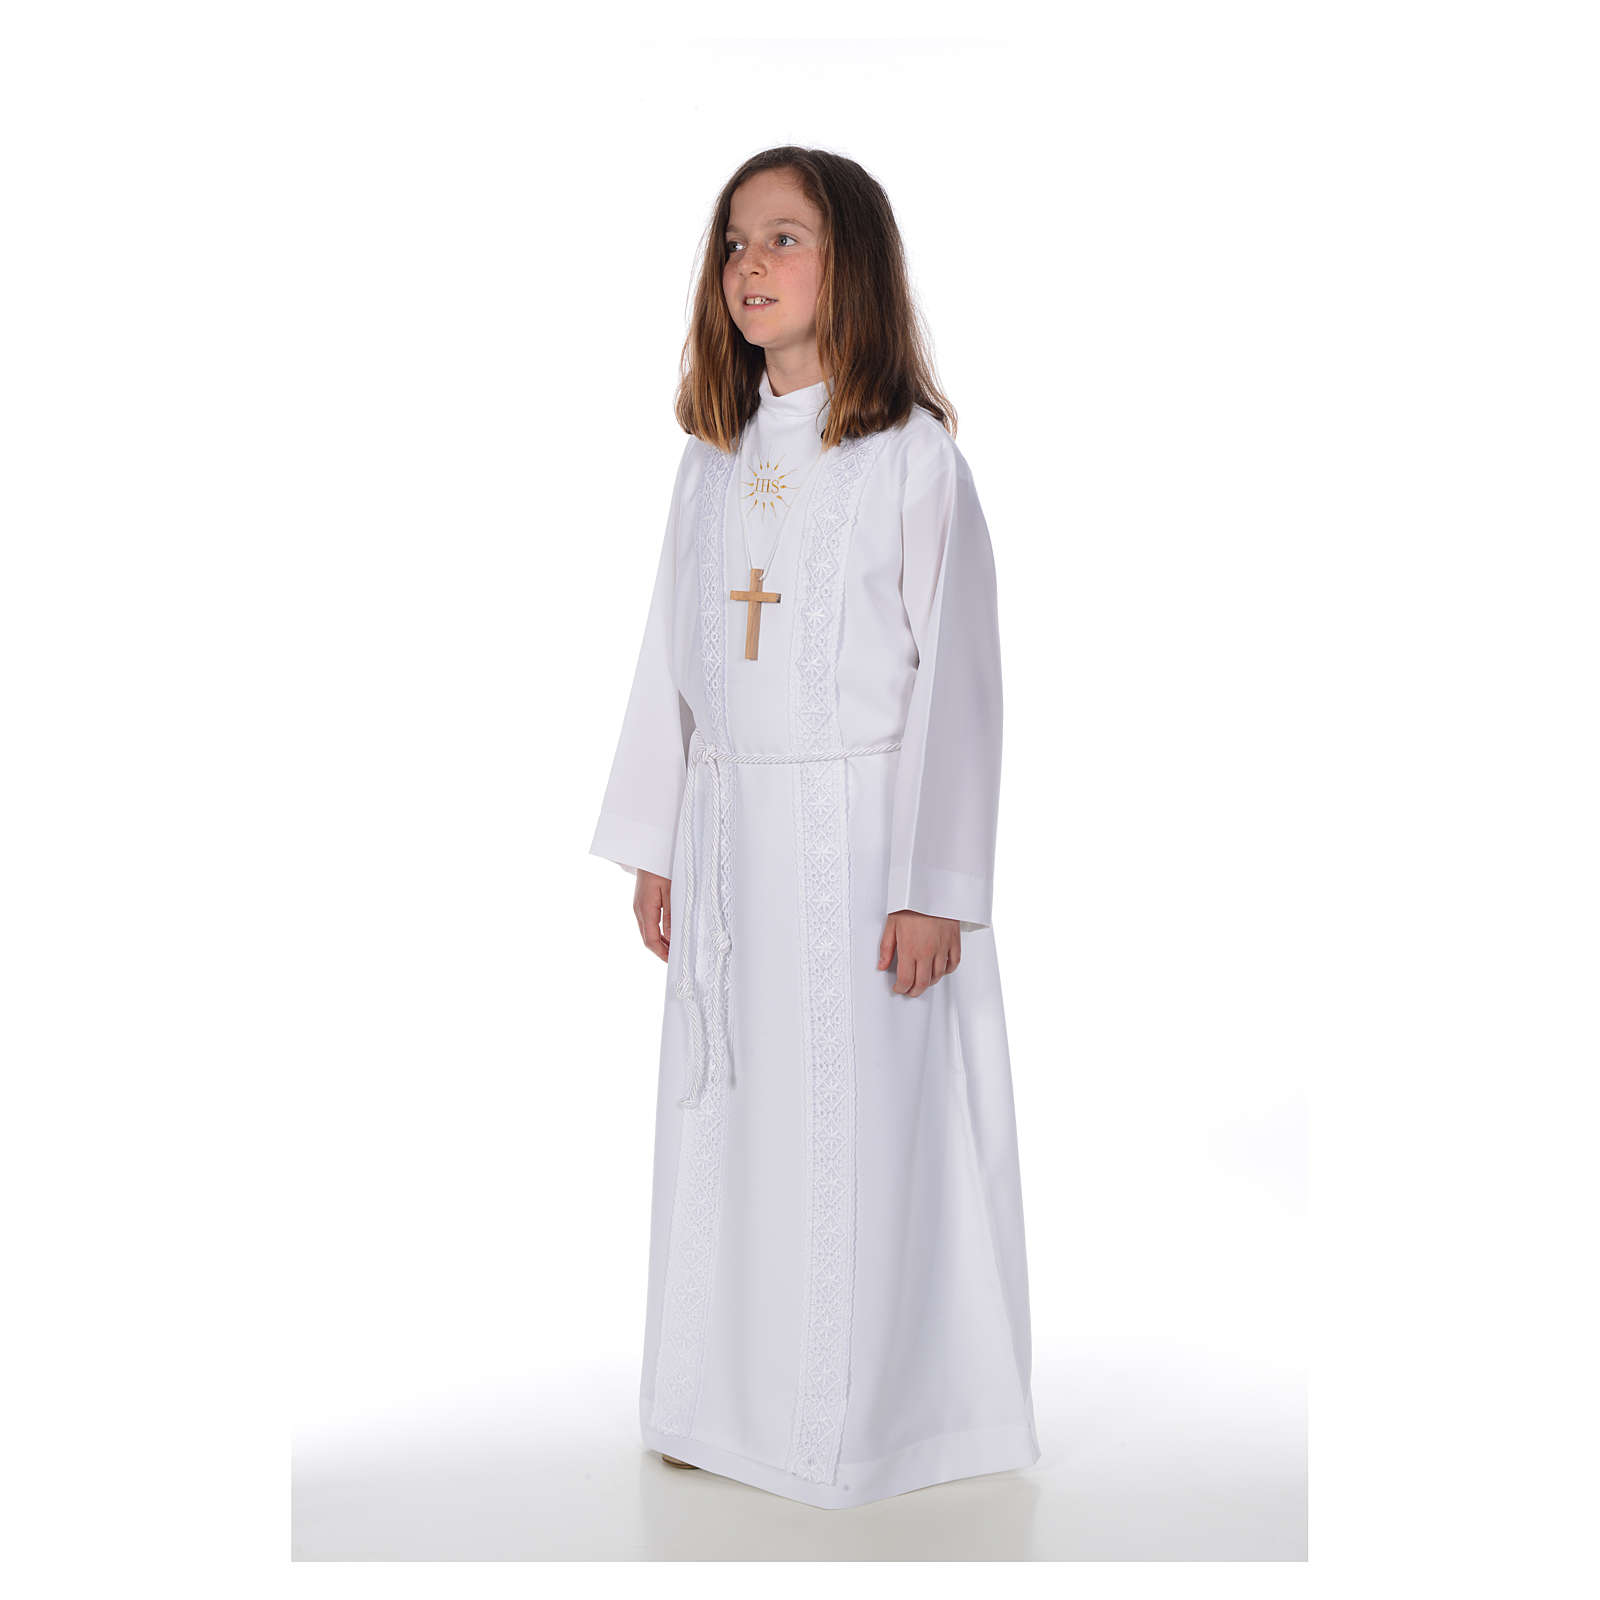 First Communion alb for girl, macramé embroidery 4